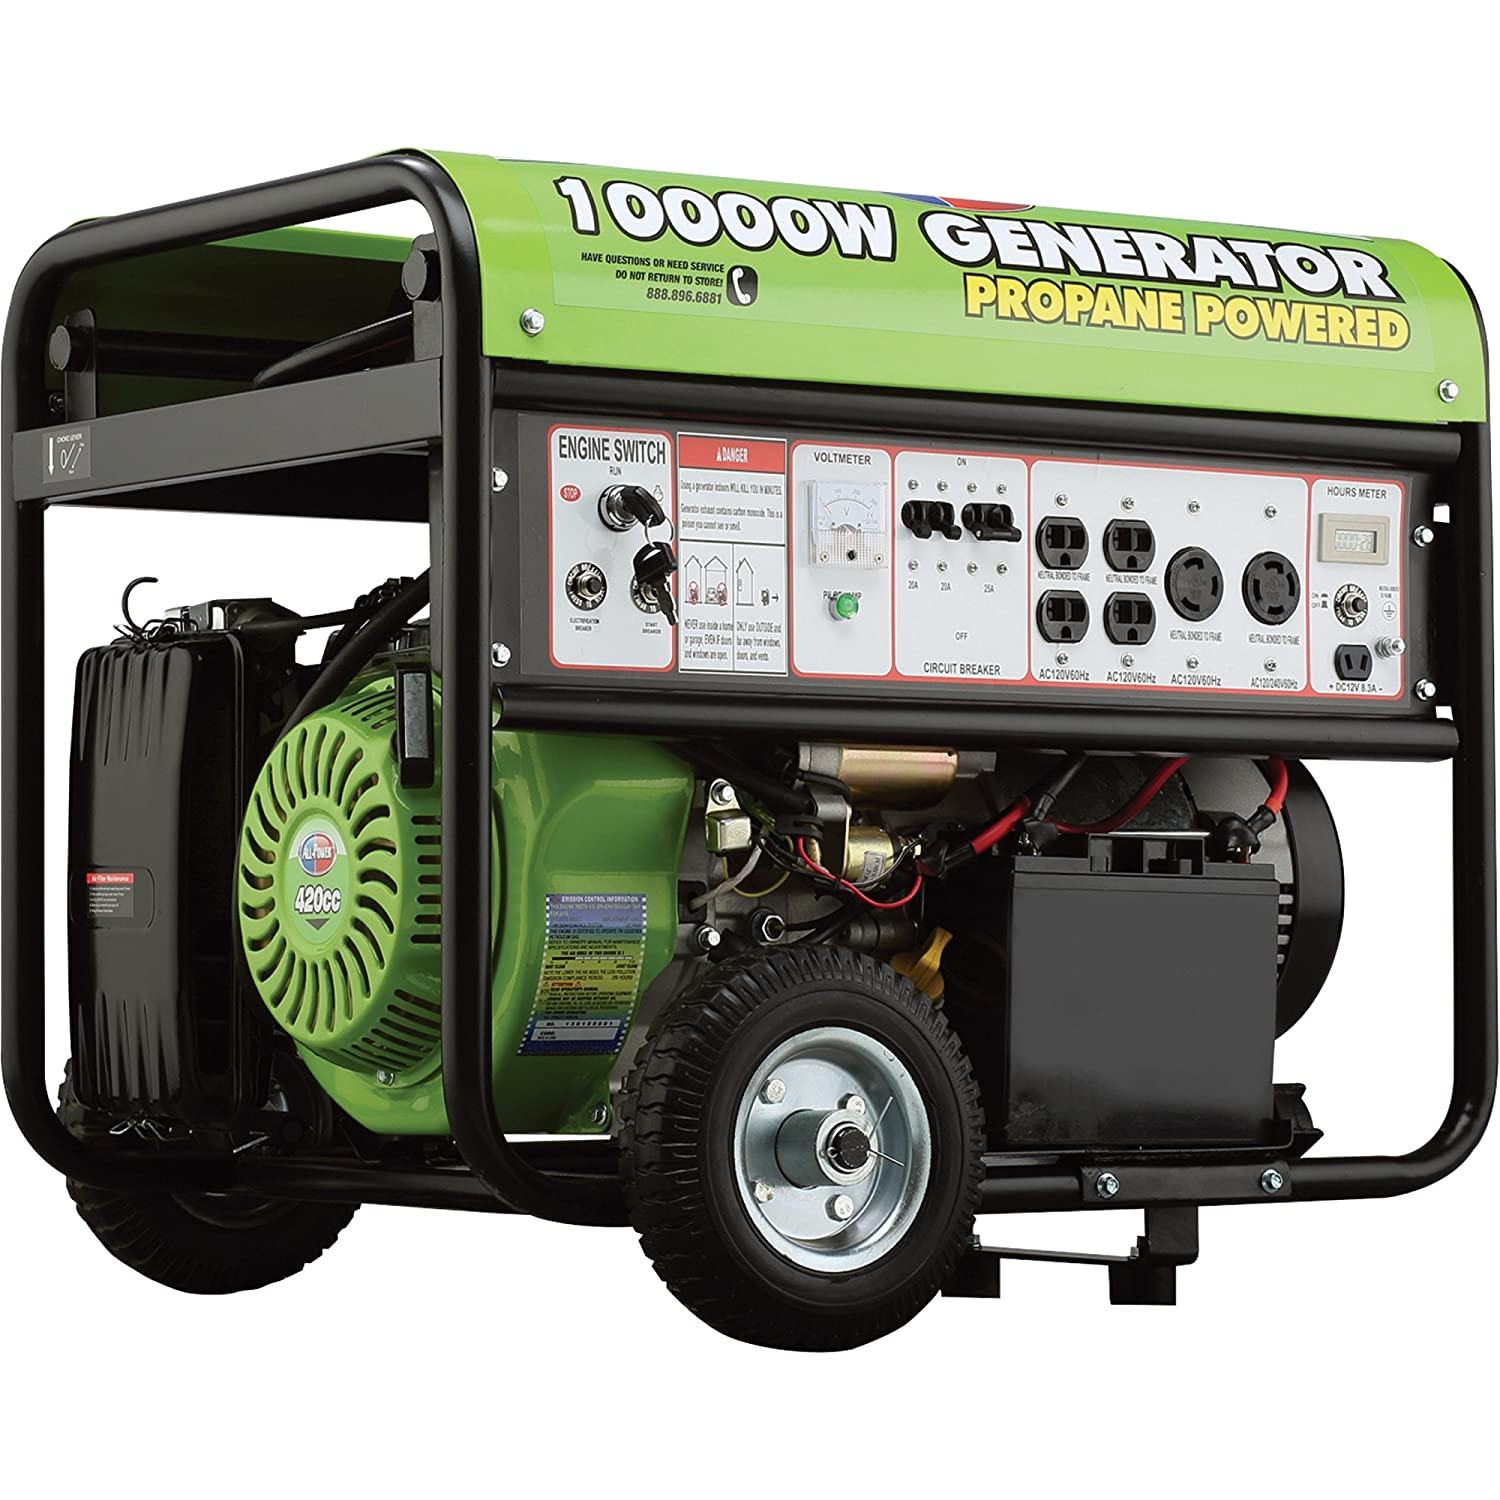 All Power 10 000w Propane Generator 420cc Watt LP ELECTRIC